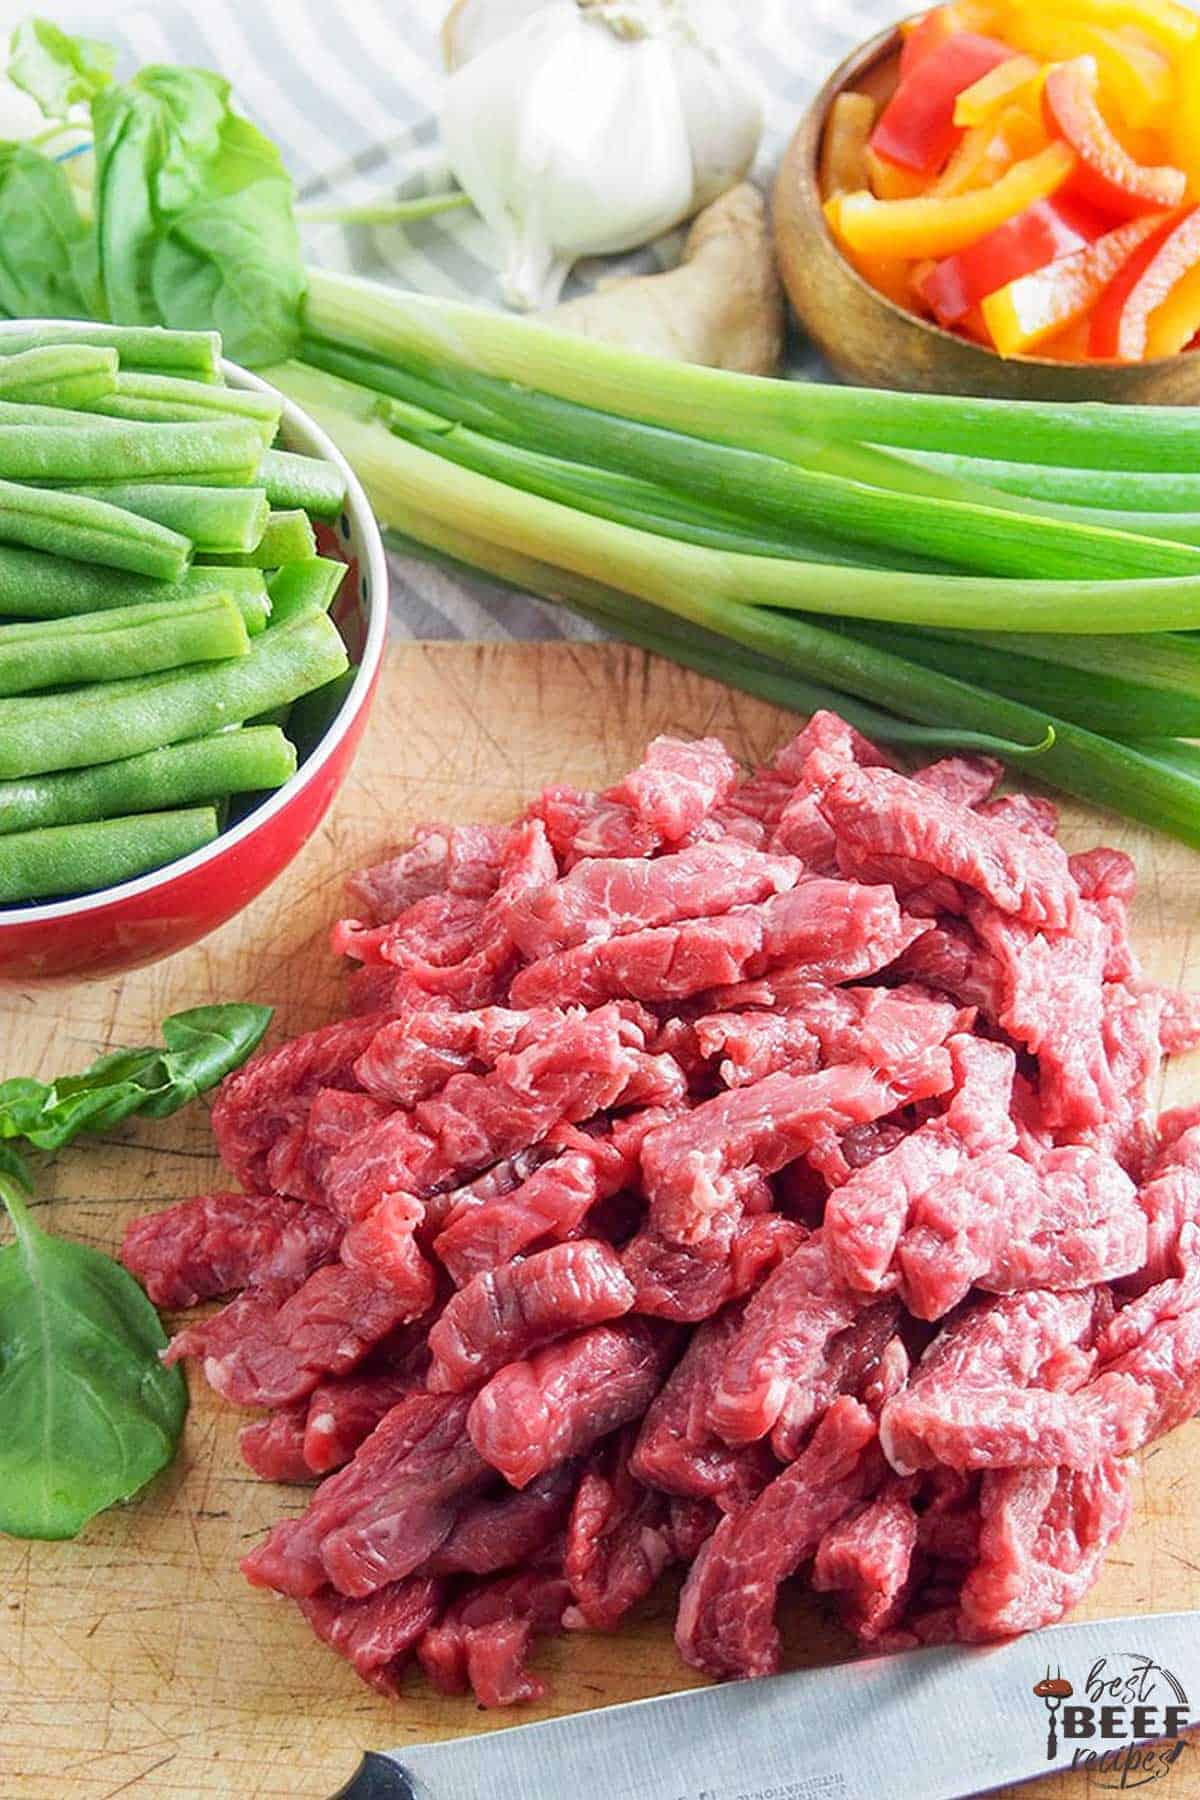 Sliced flank steak on a cutting board with trimmed green beans and green onions